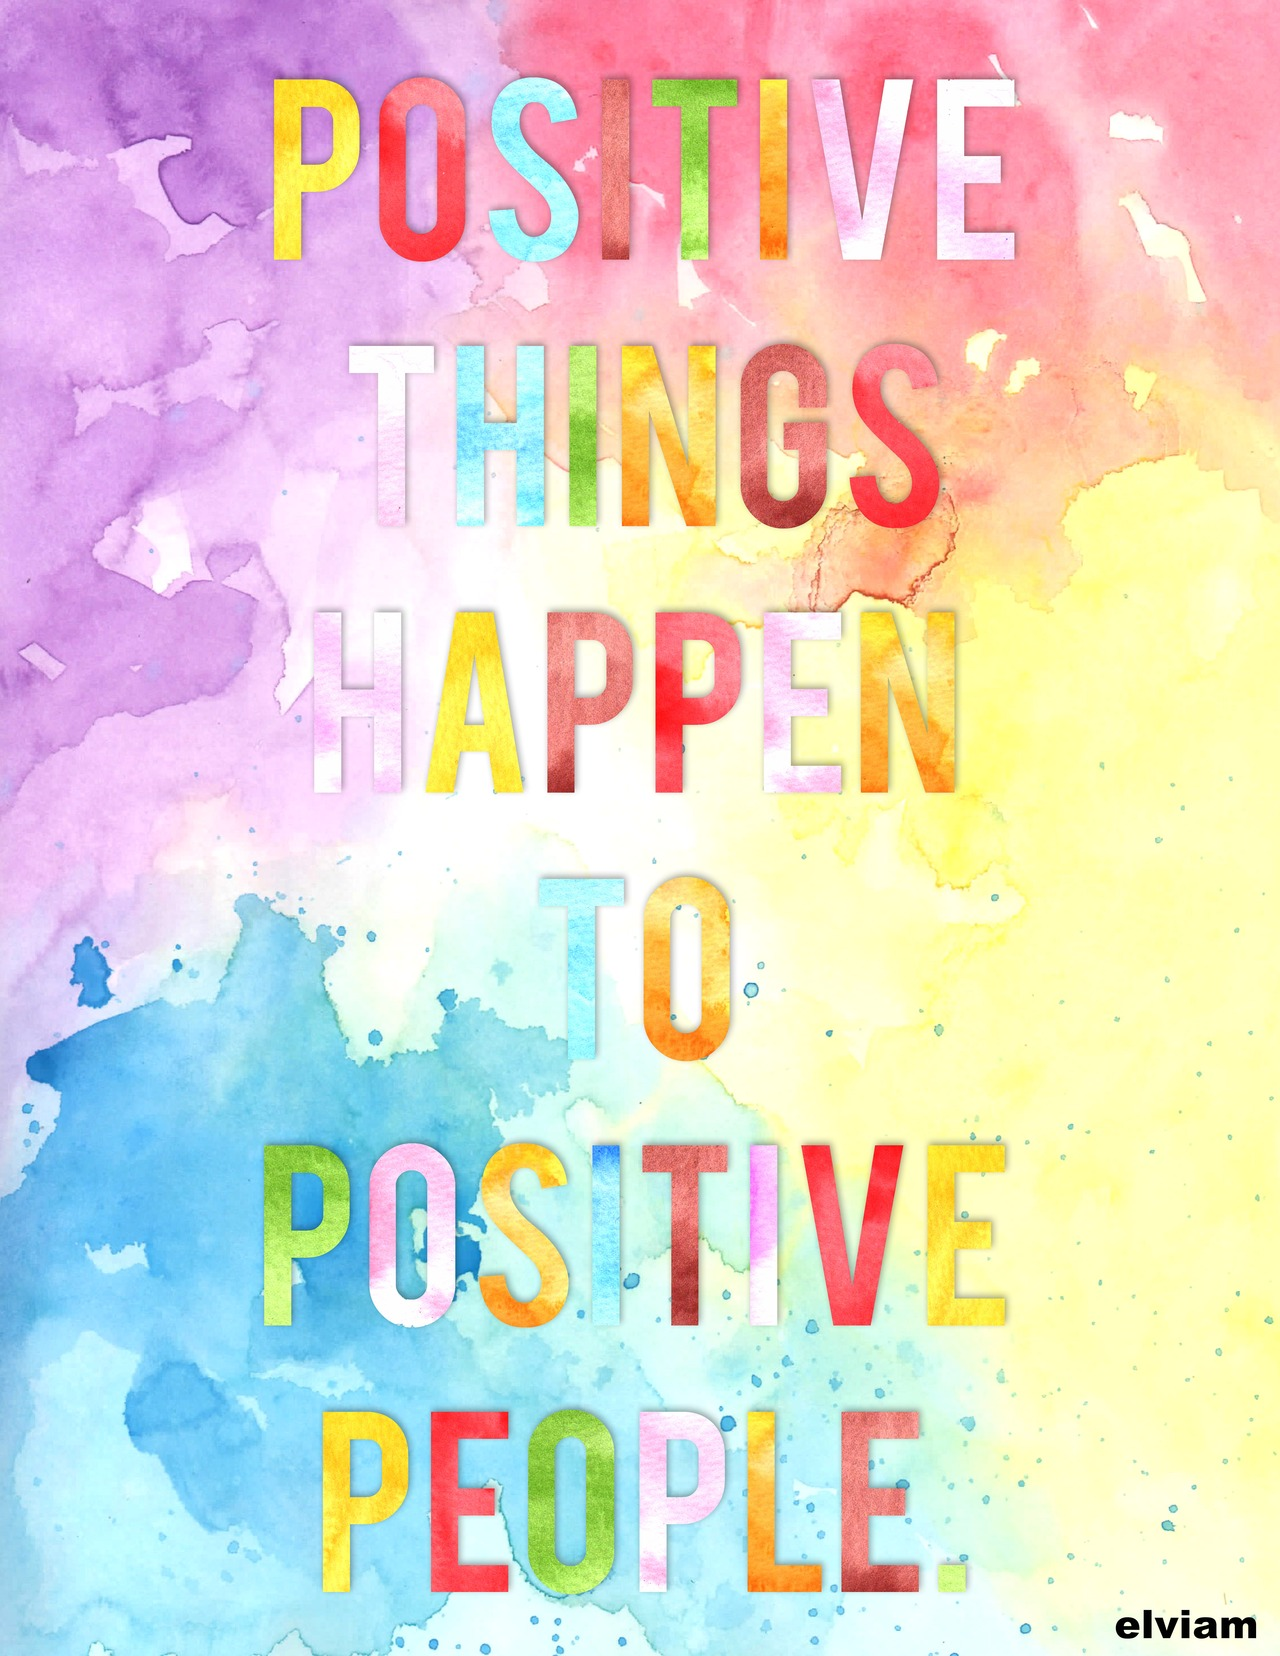 Positive People Quotes Positive Things Happen  Via Tumblr On We Heart It